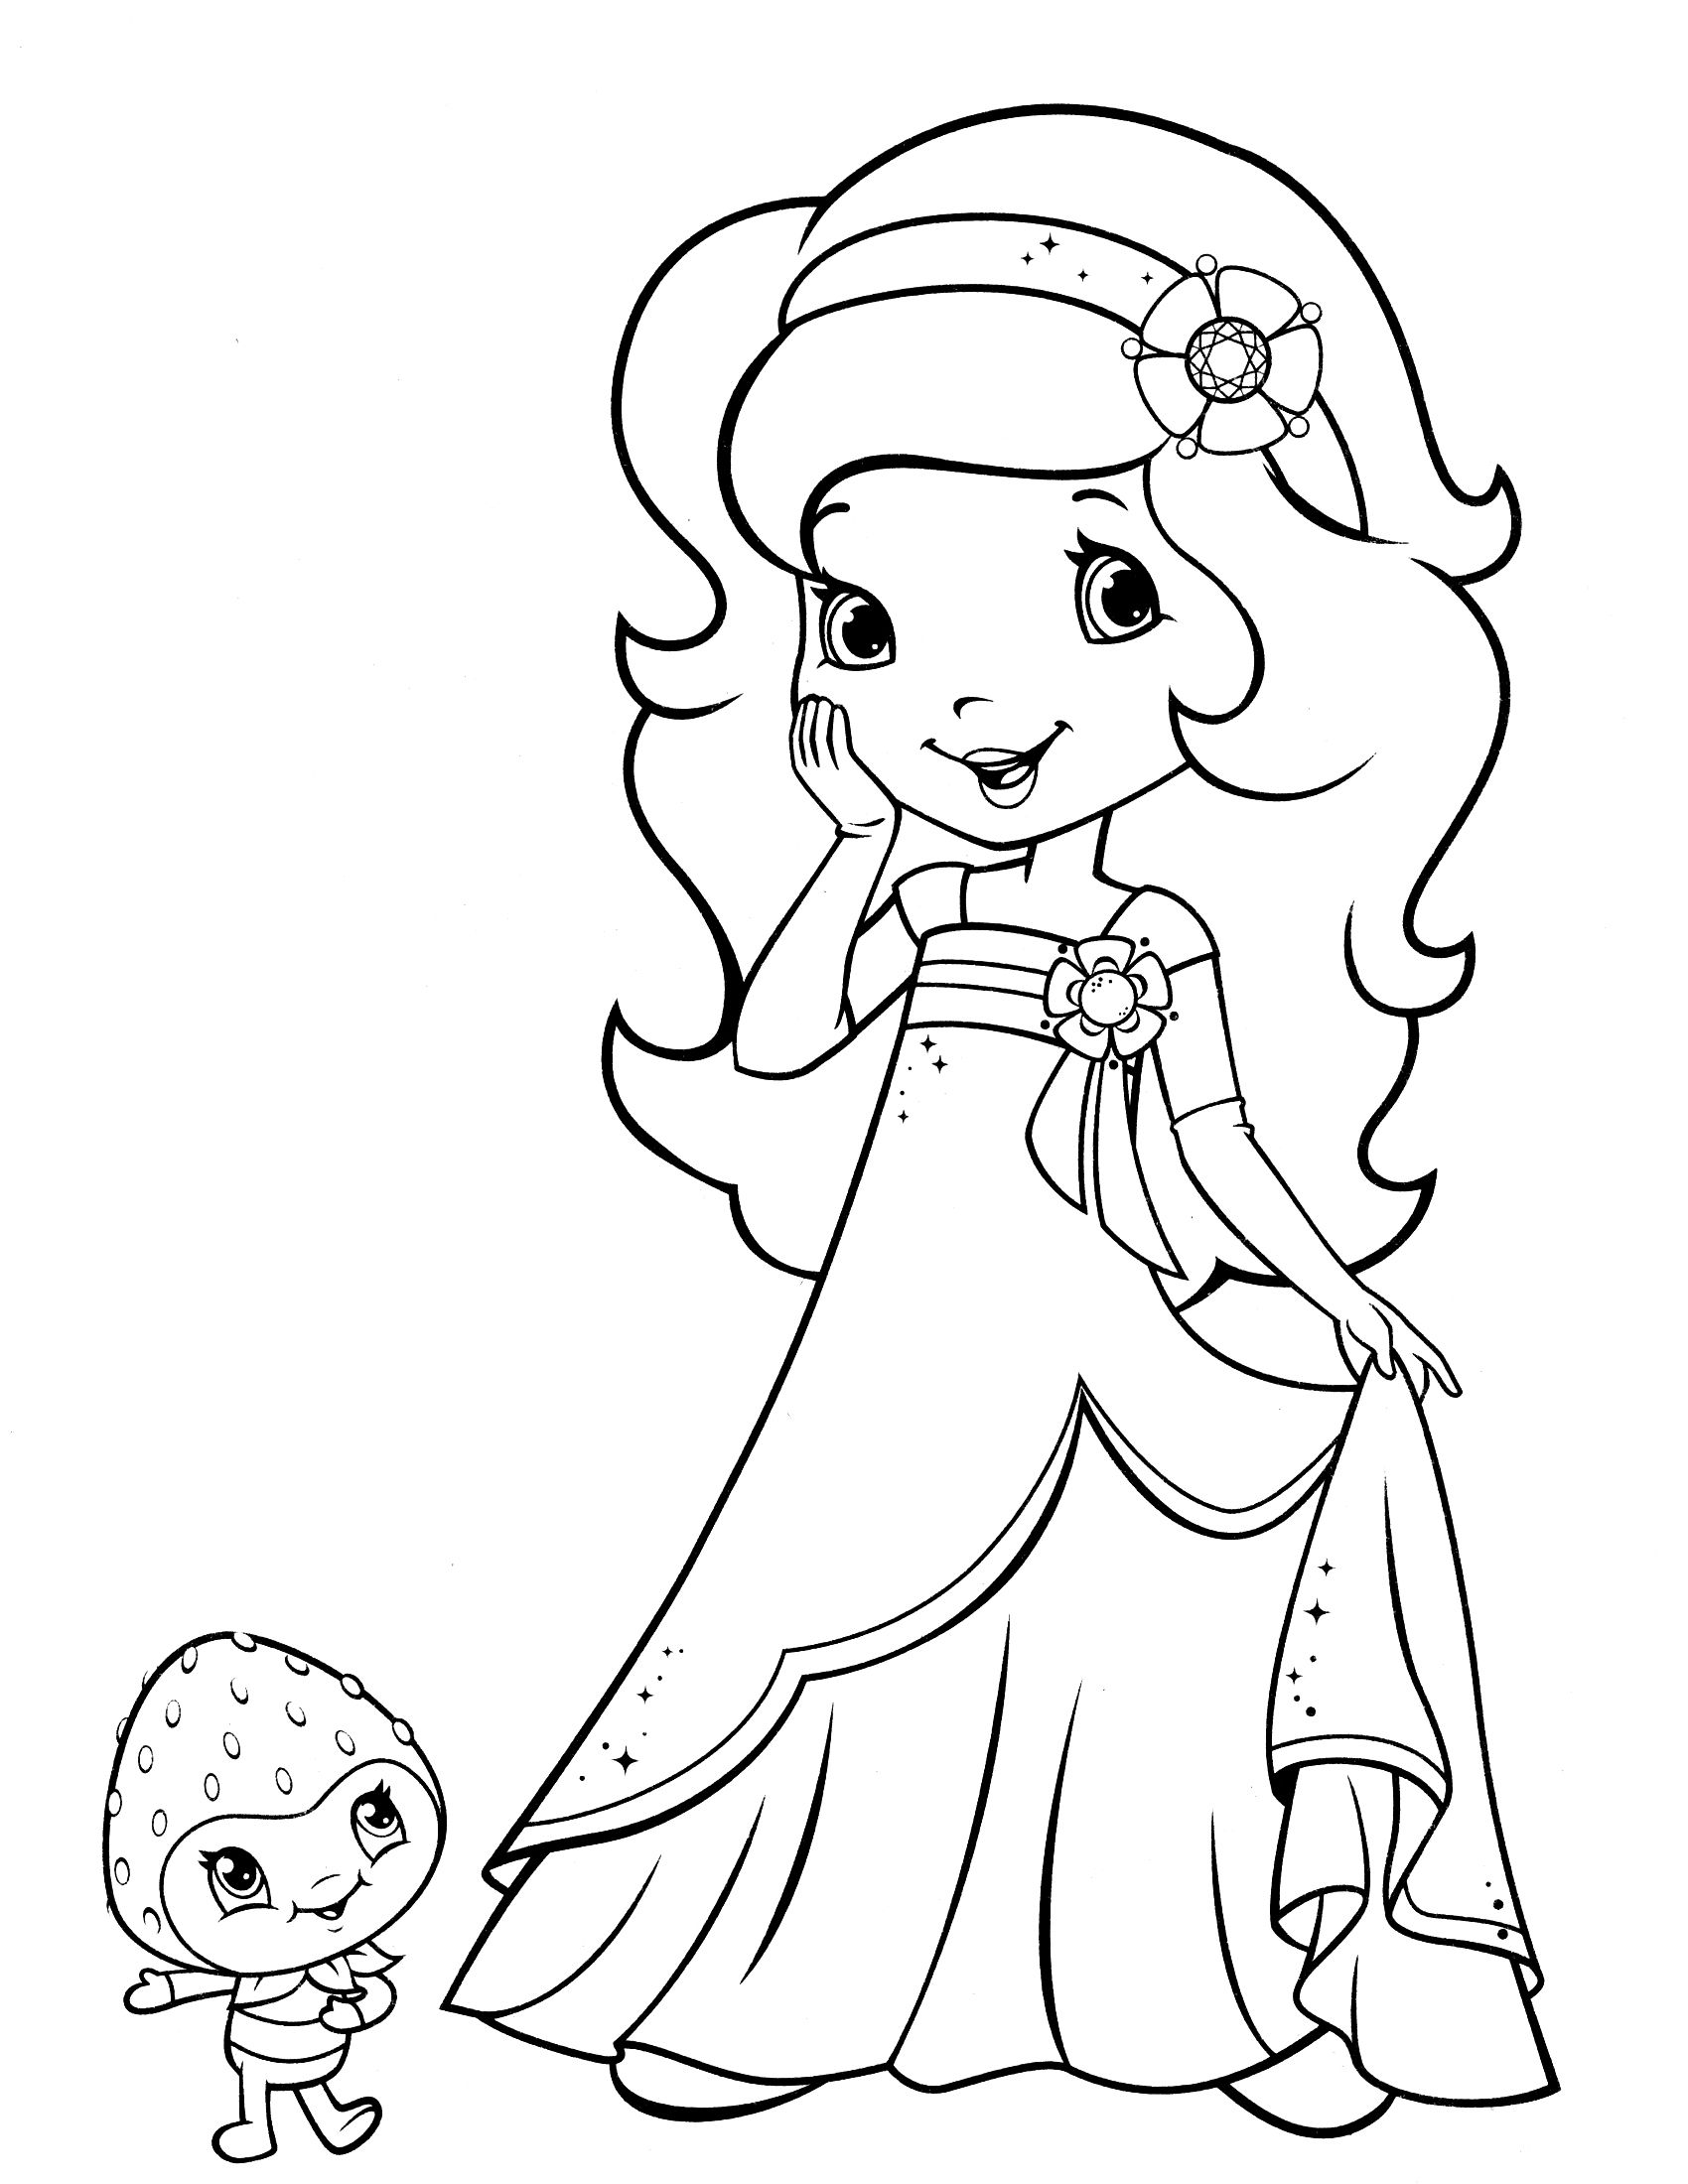 Adult Cute Printable Strawberry Shortcake Coloring Pages Gallery Images top strawberry shortcake sheets coloring dog pages and printable gallery images